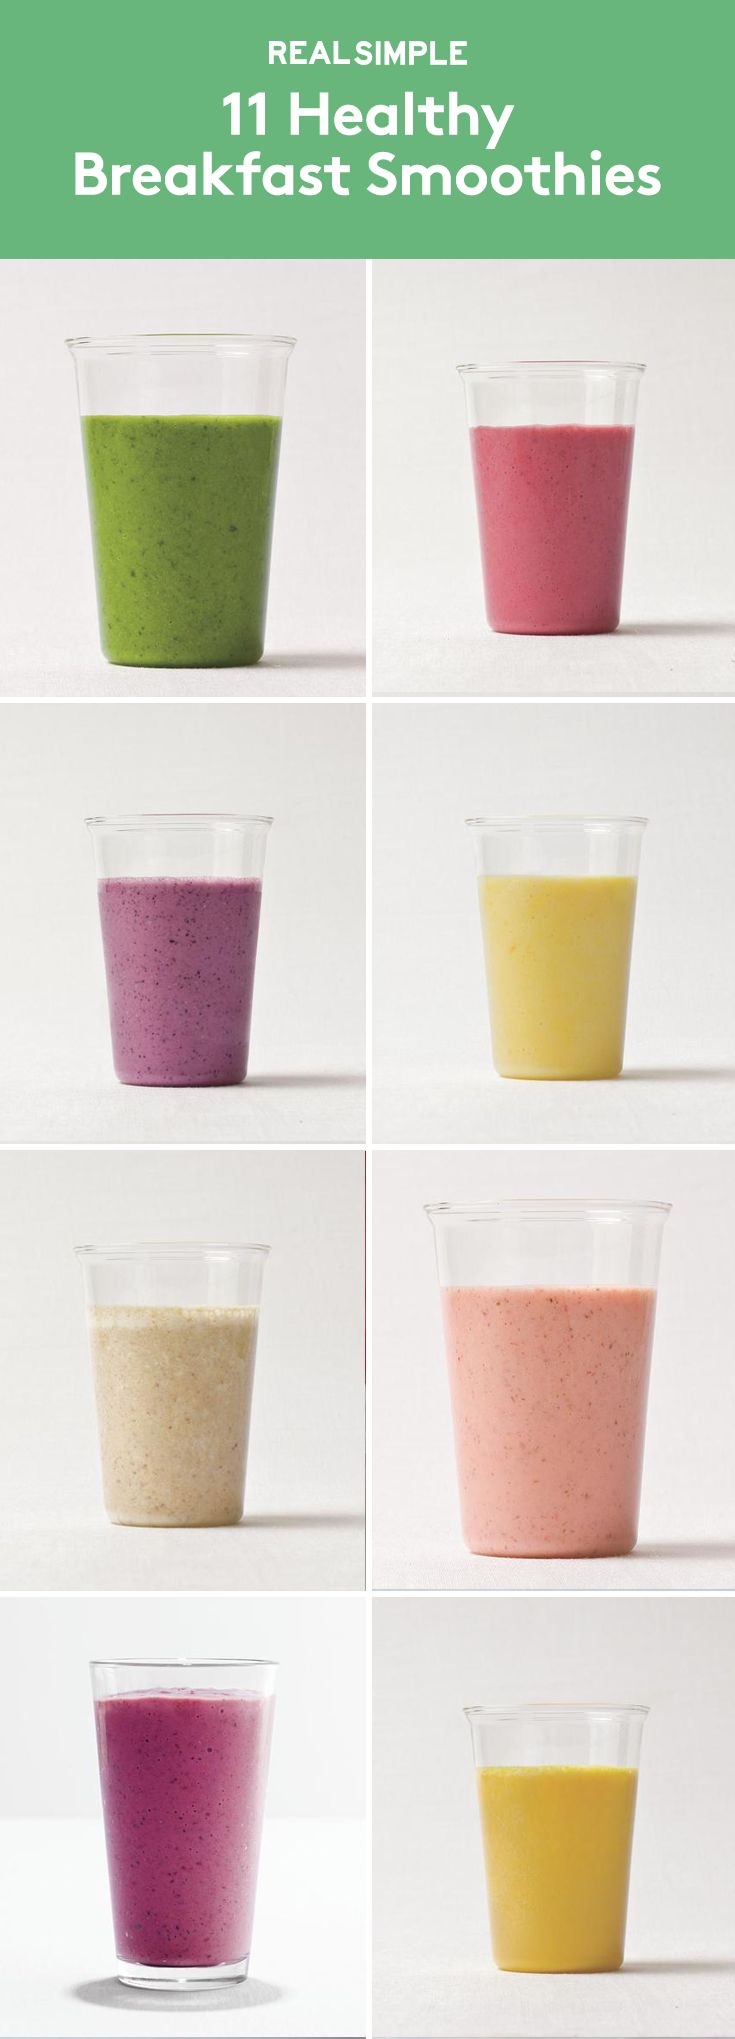 11 Healthy Breakfast Smoothies | Load up on fruits and vegetables by starting each morning with a nutritious blended drink.